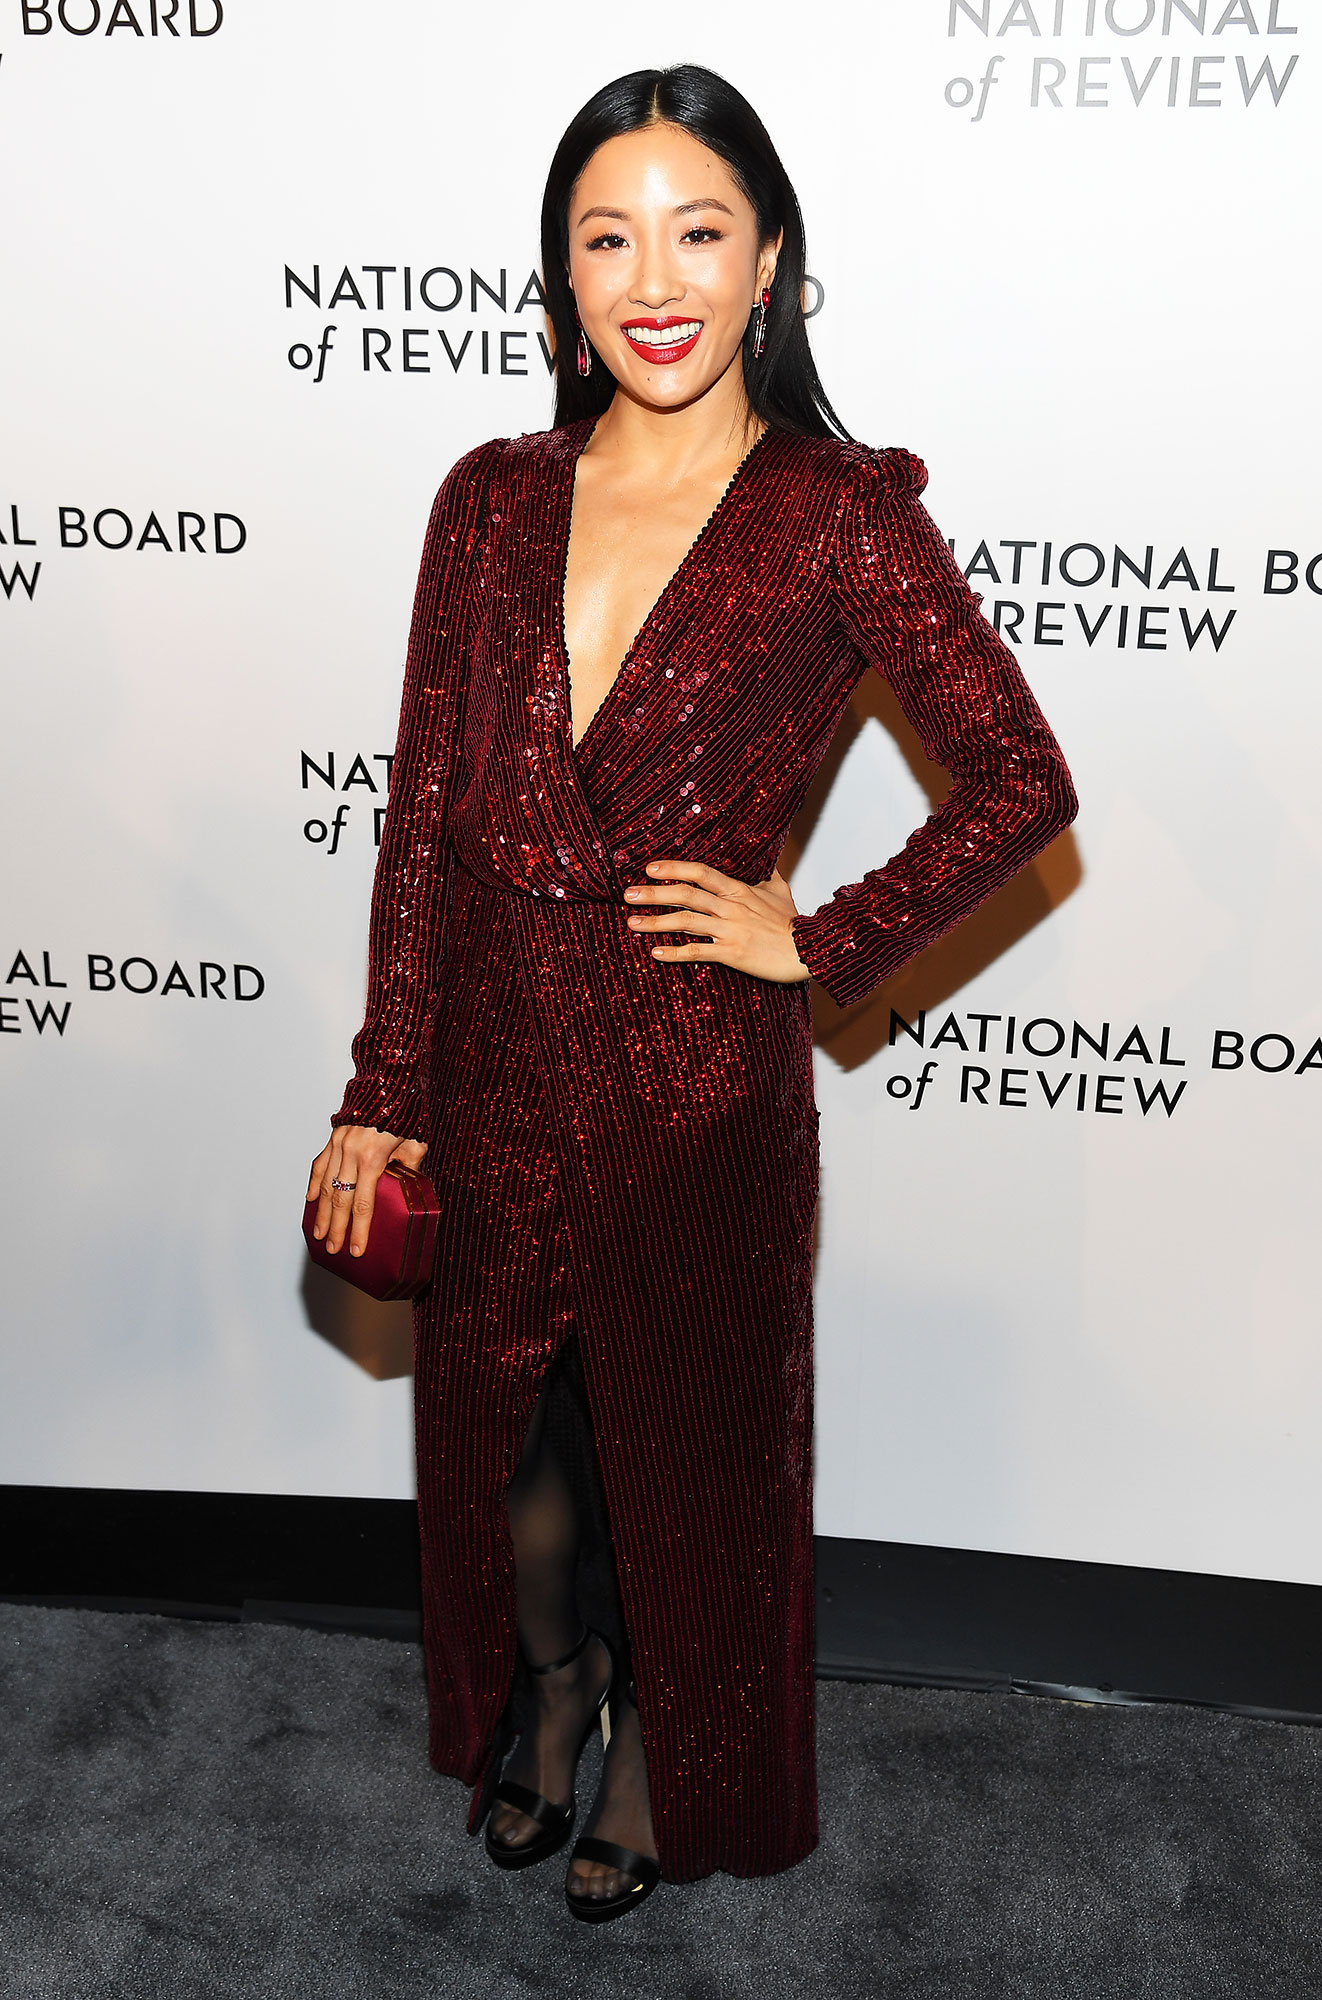 Stylish Burgundy Constance Wu - In an embroidered Galvan on Jan. 8.